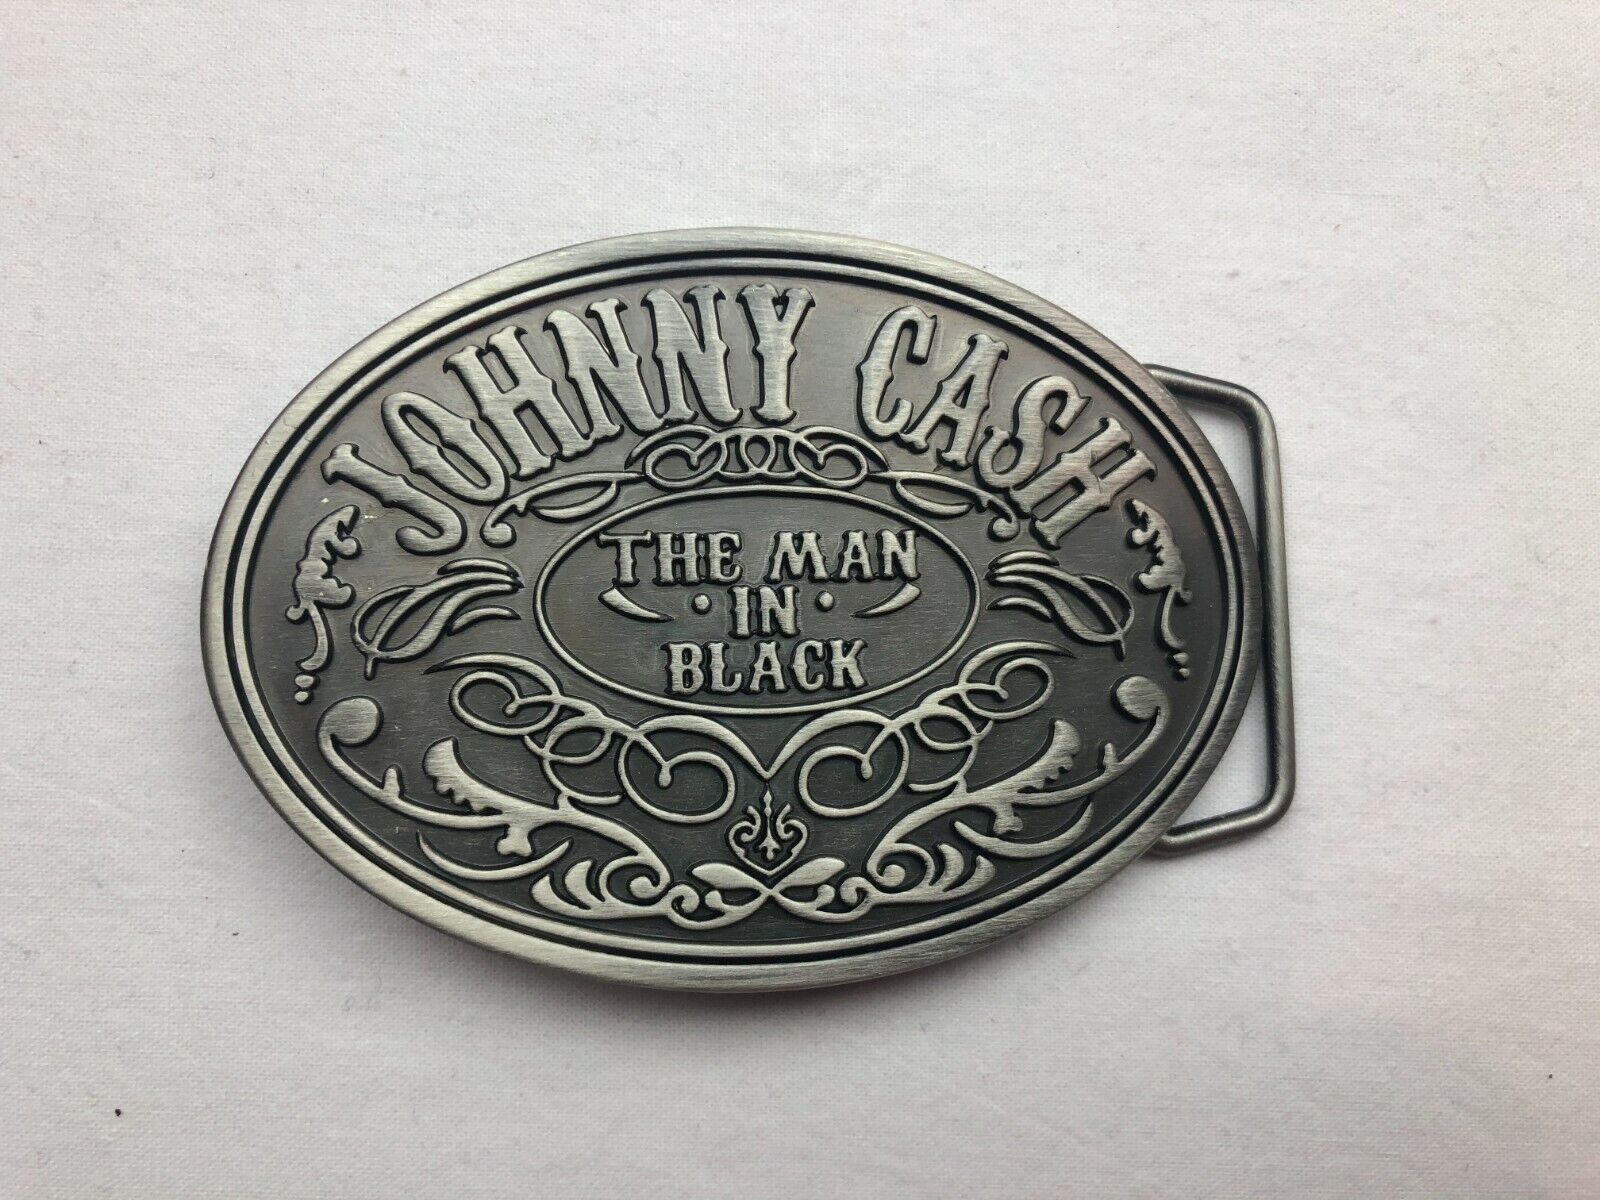 Johnny Cash 2006 The Man in Black Authentic New Belt Buckle